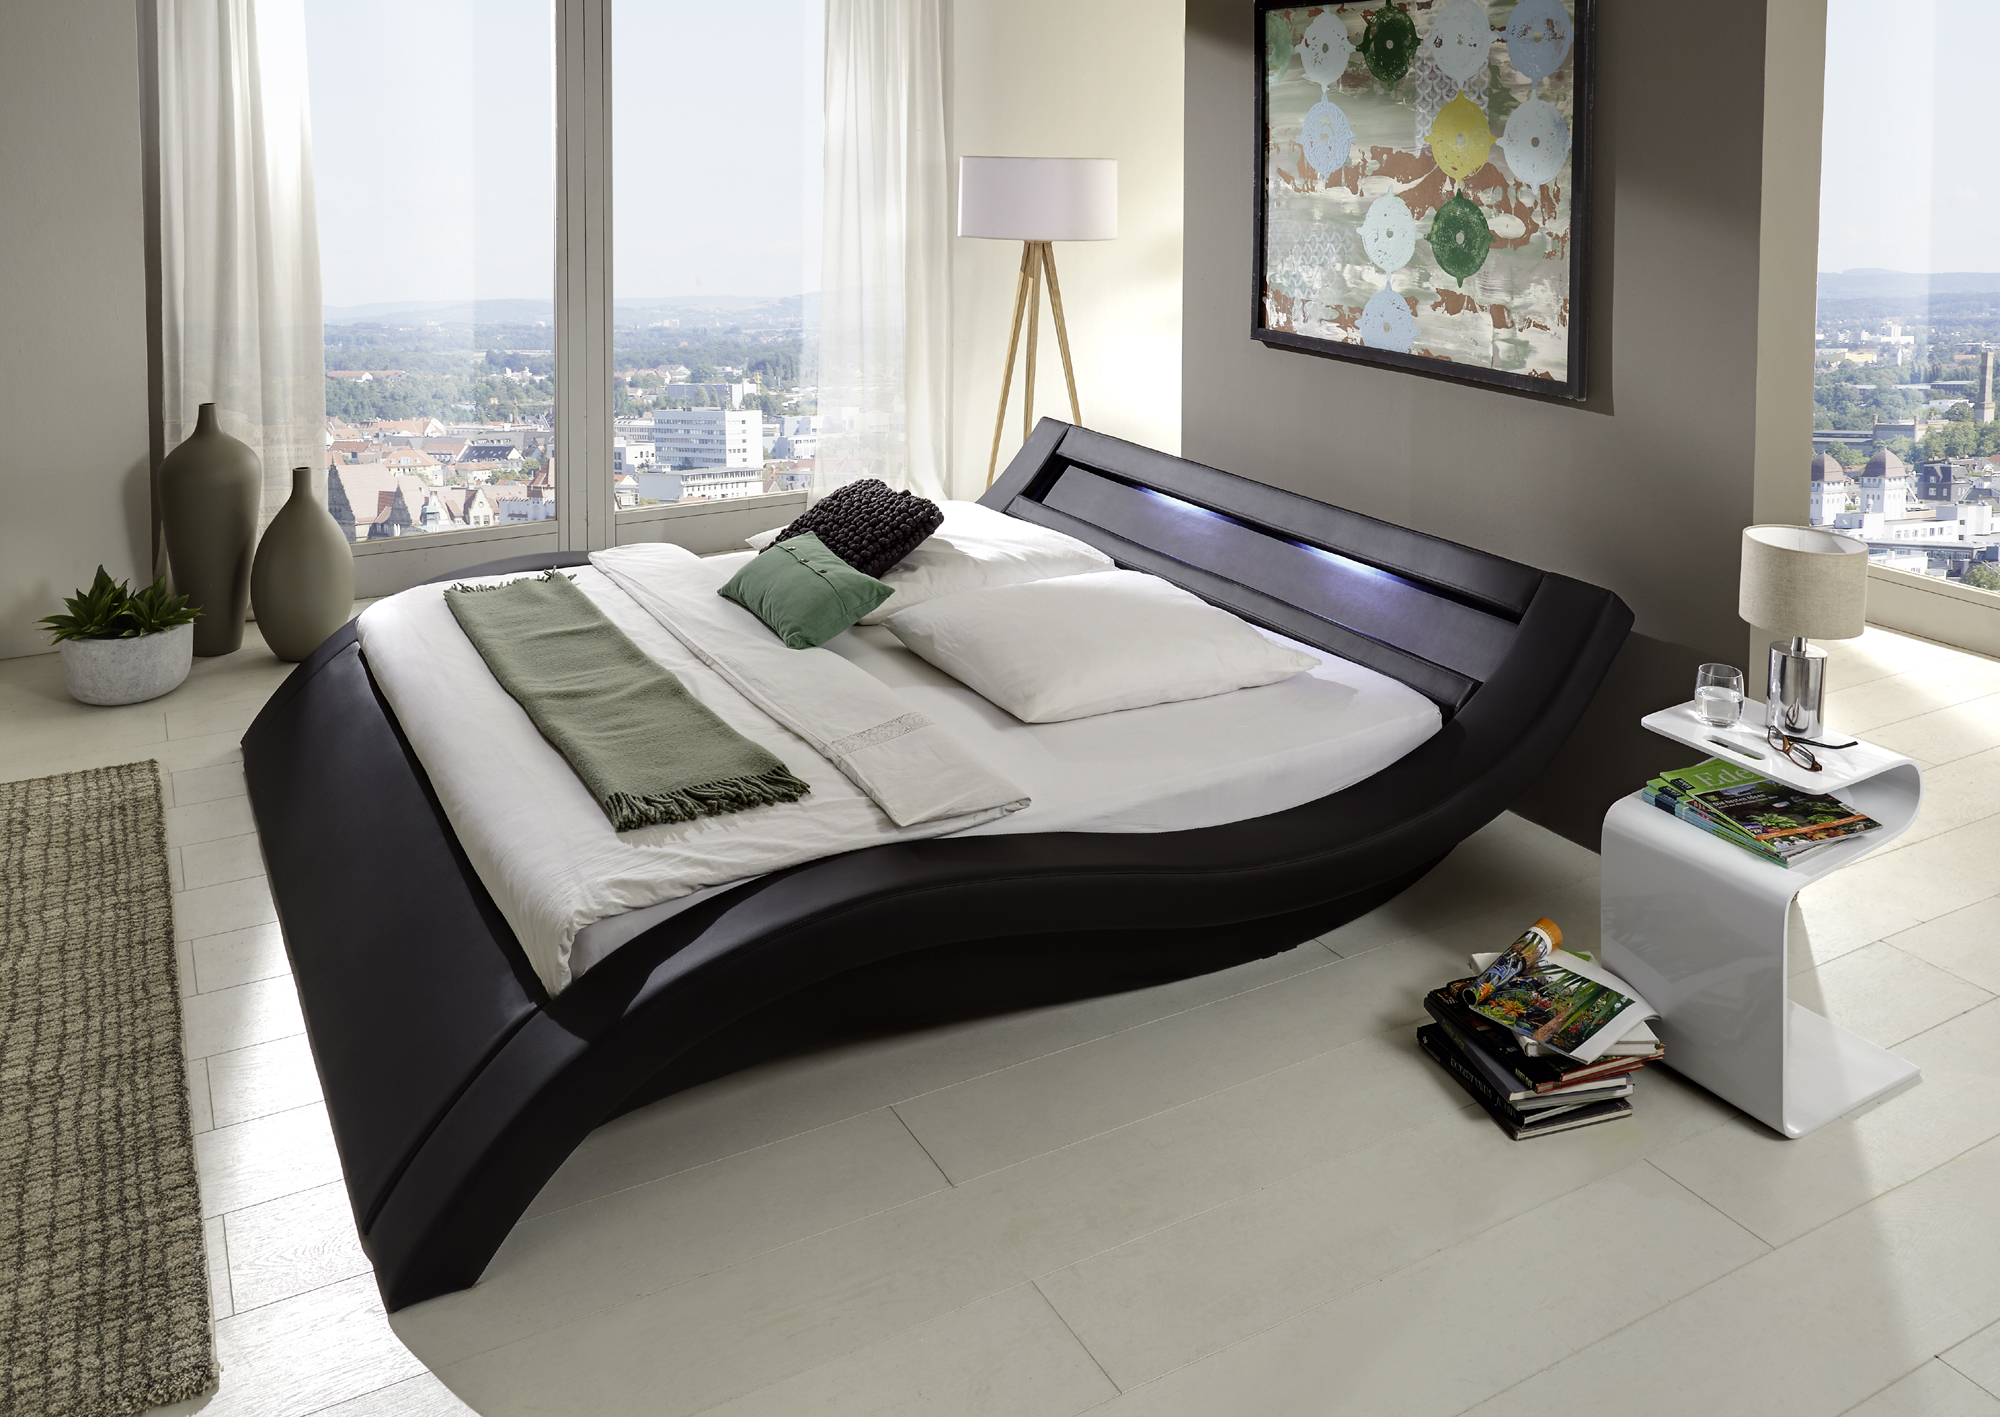 sam polsterbett 120 x 200 cm beleuchtung farbauswahl look bestellware. Black Bedroom Furniture Sets. Home Design Ideas